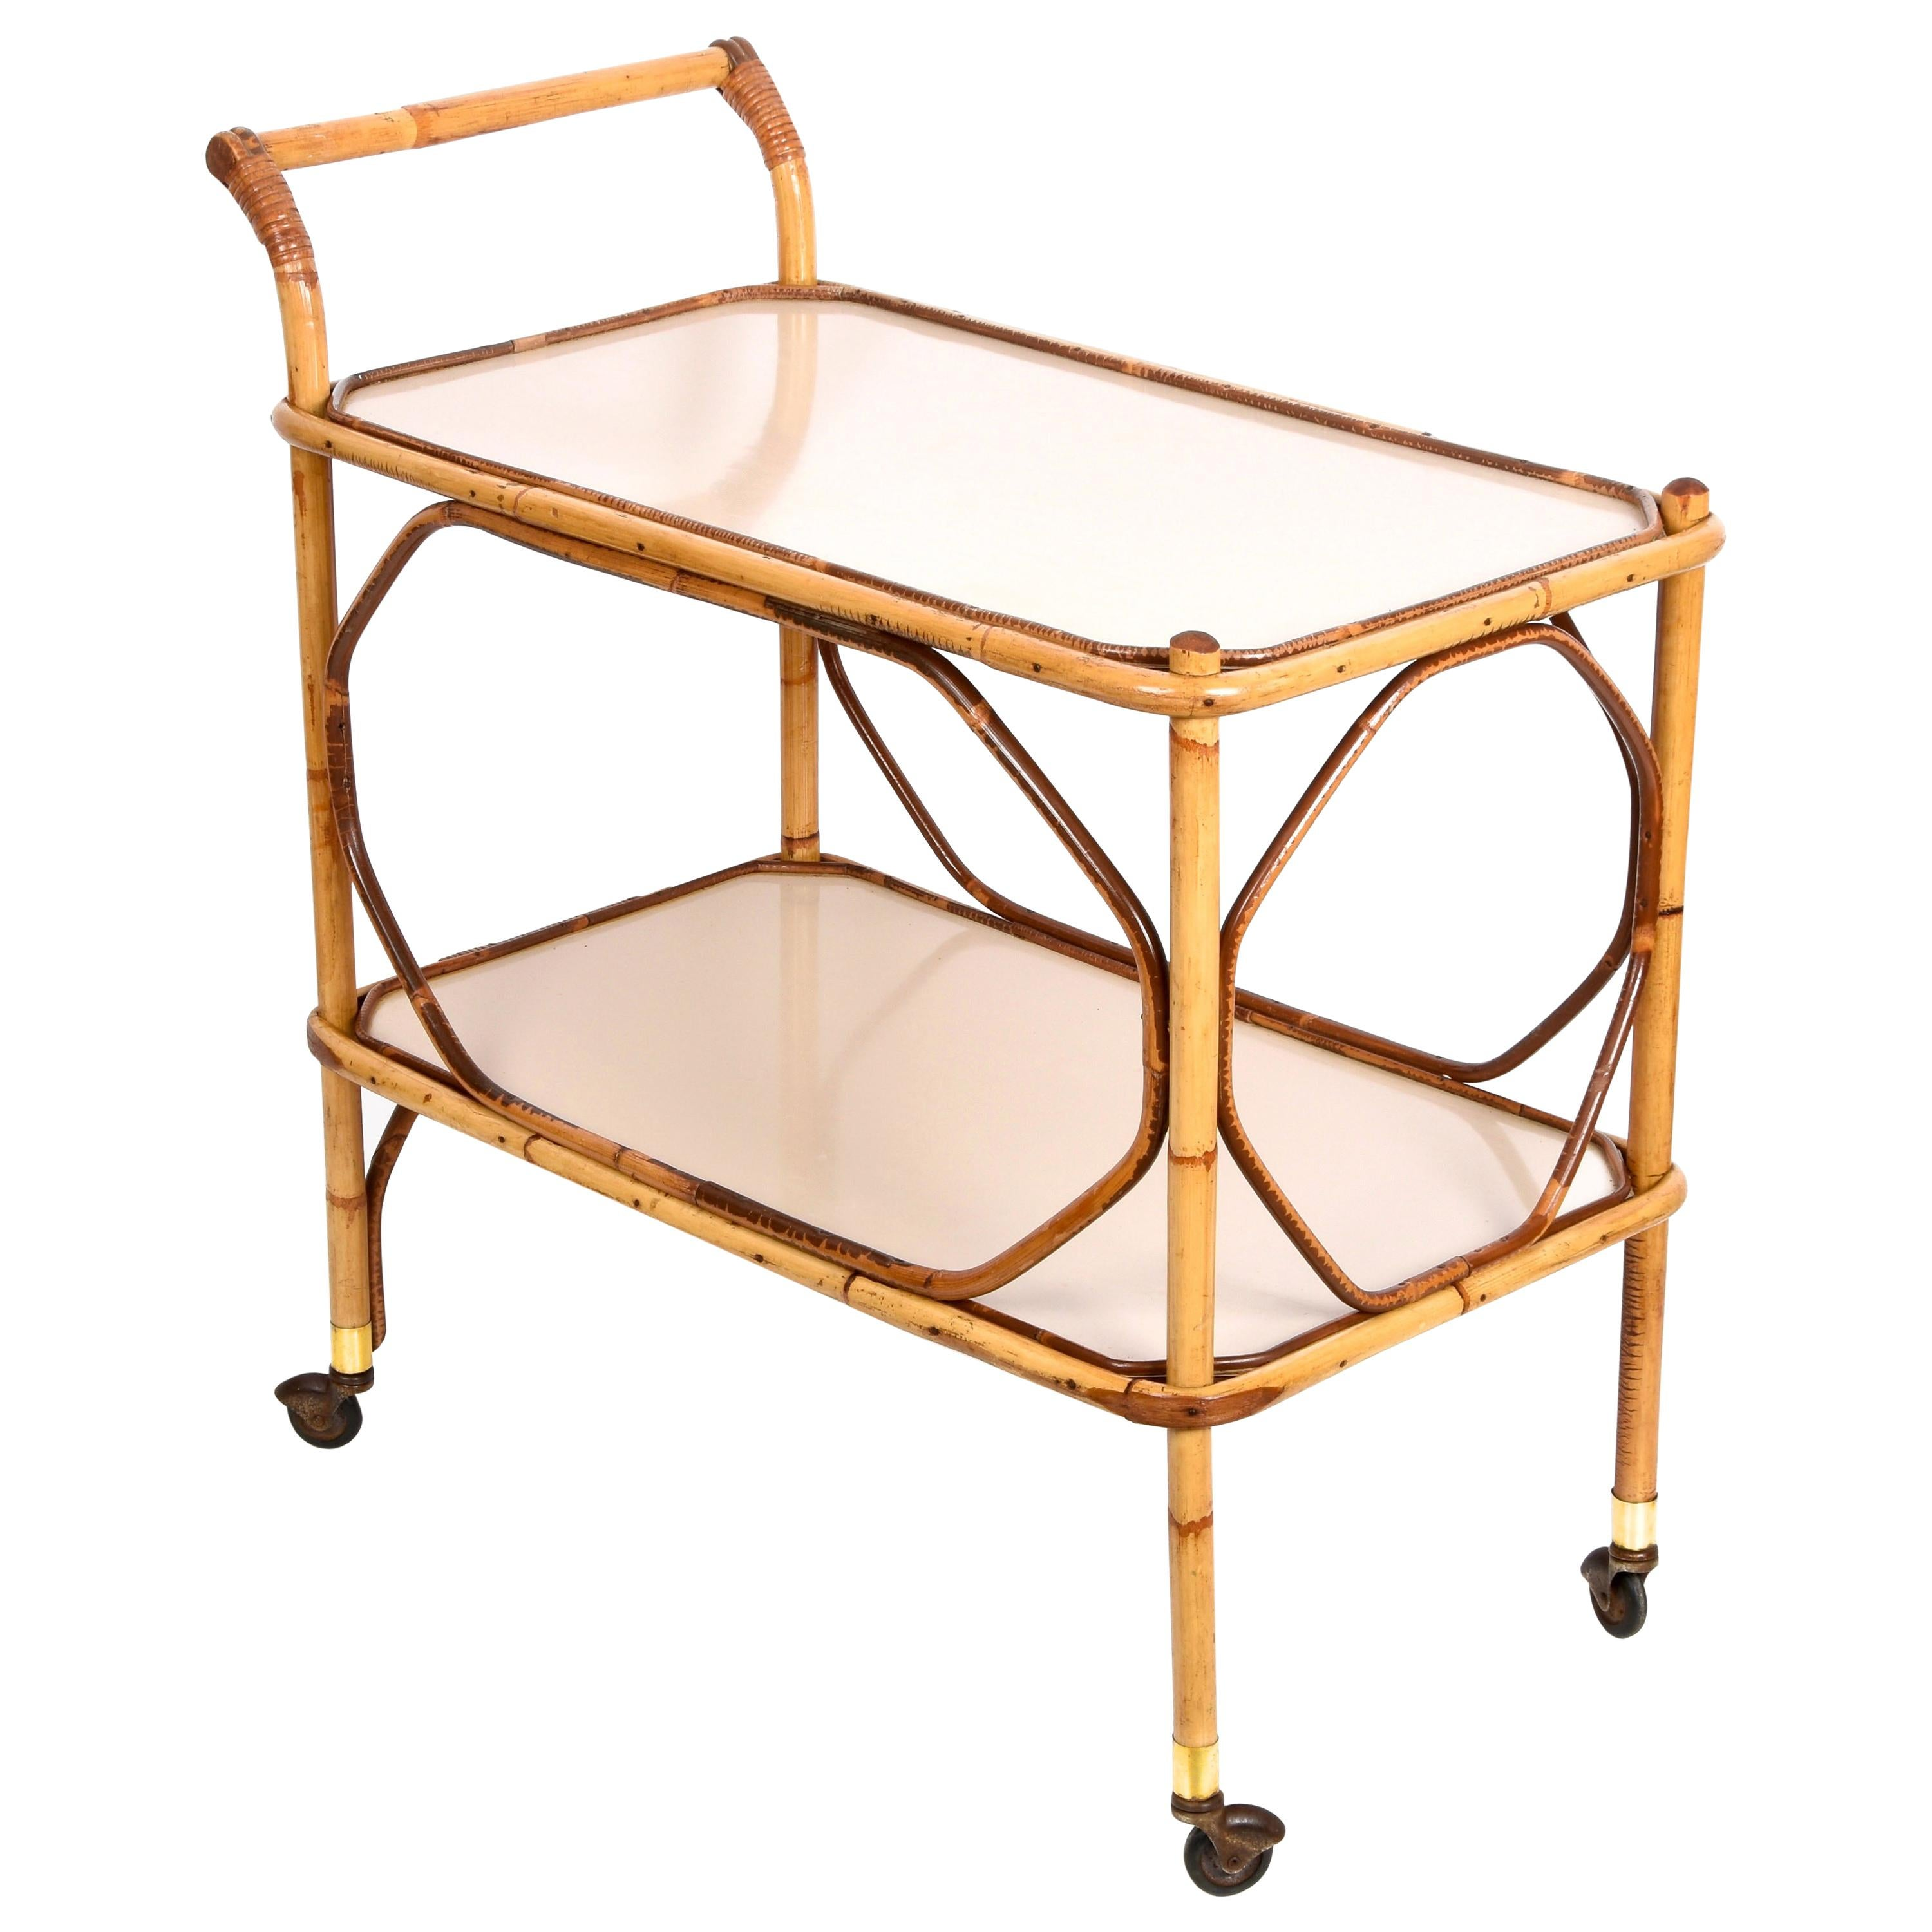 Midcentury Italian Bamboo, Rattan and Formica Bar Serving Cart, 1950s